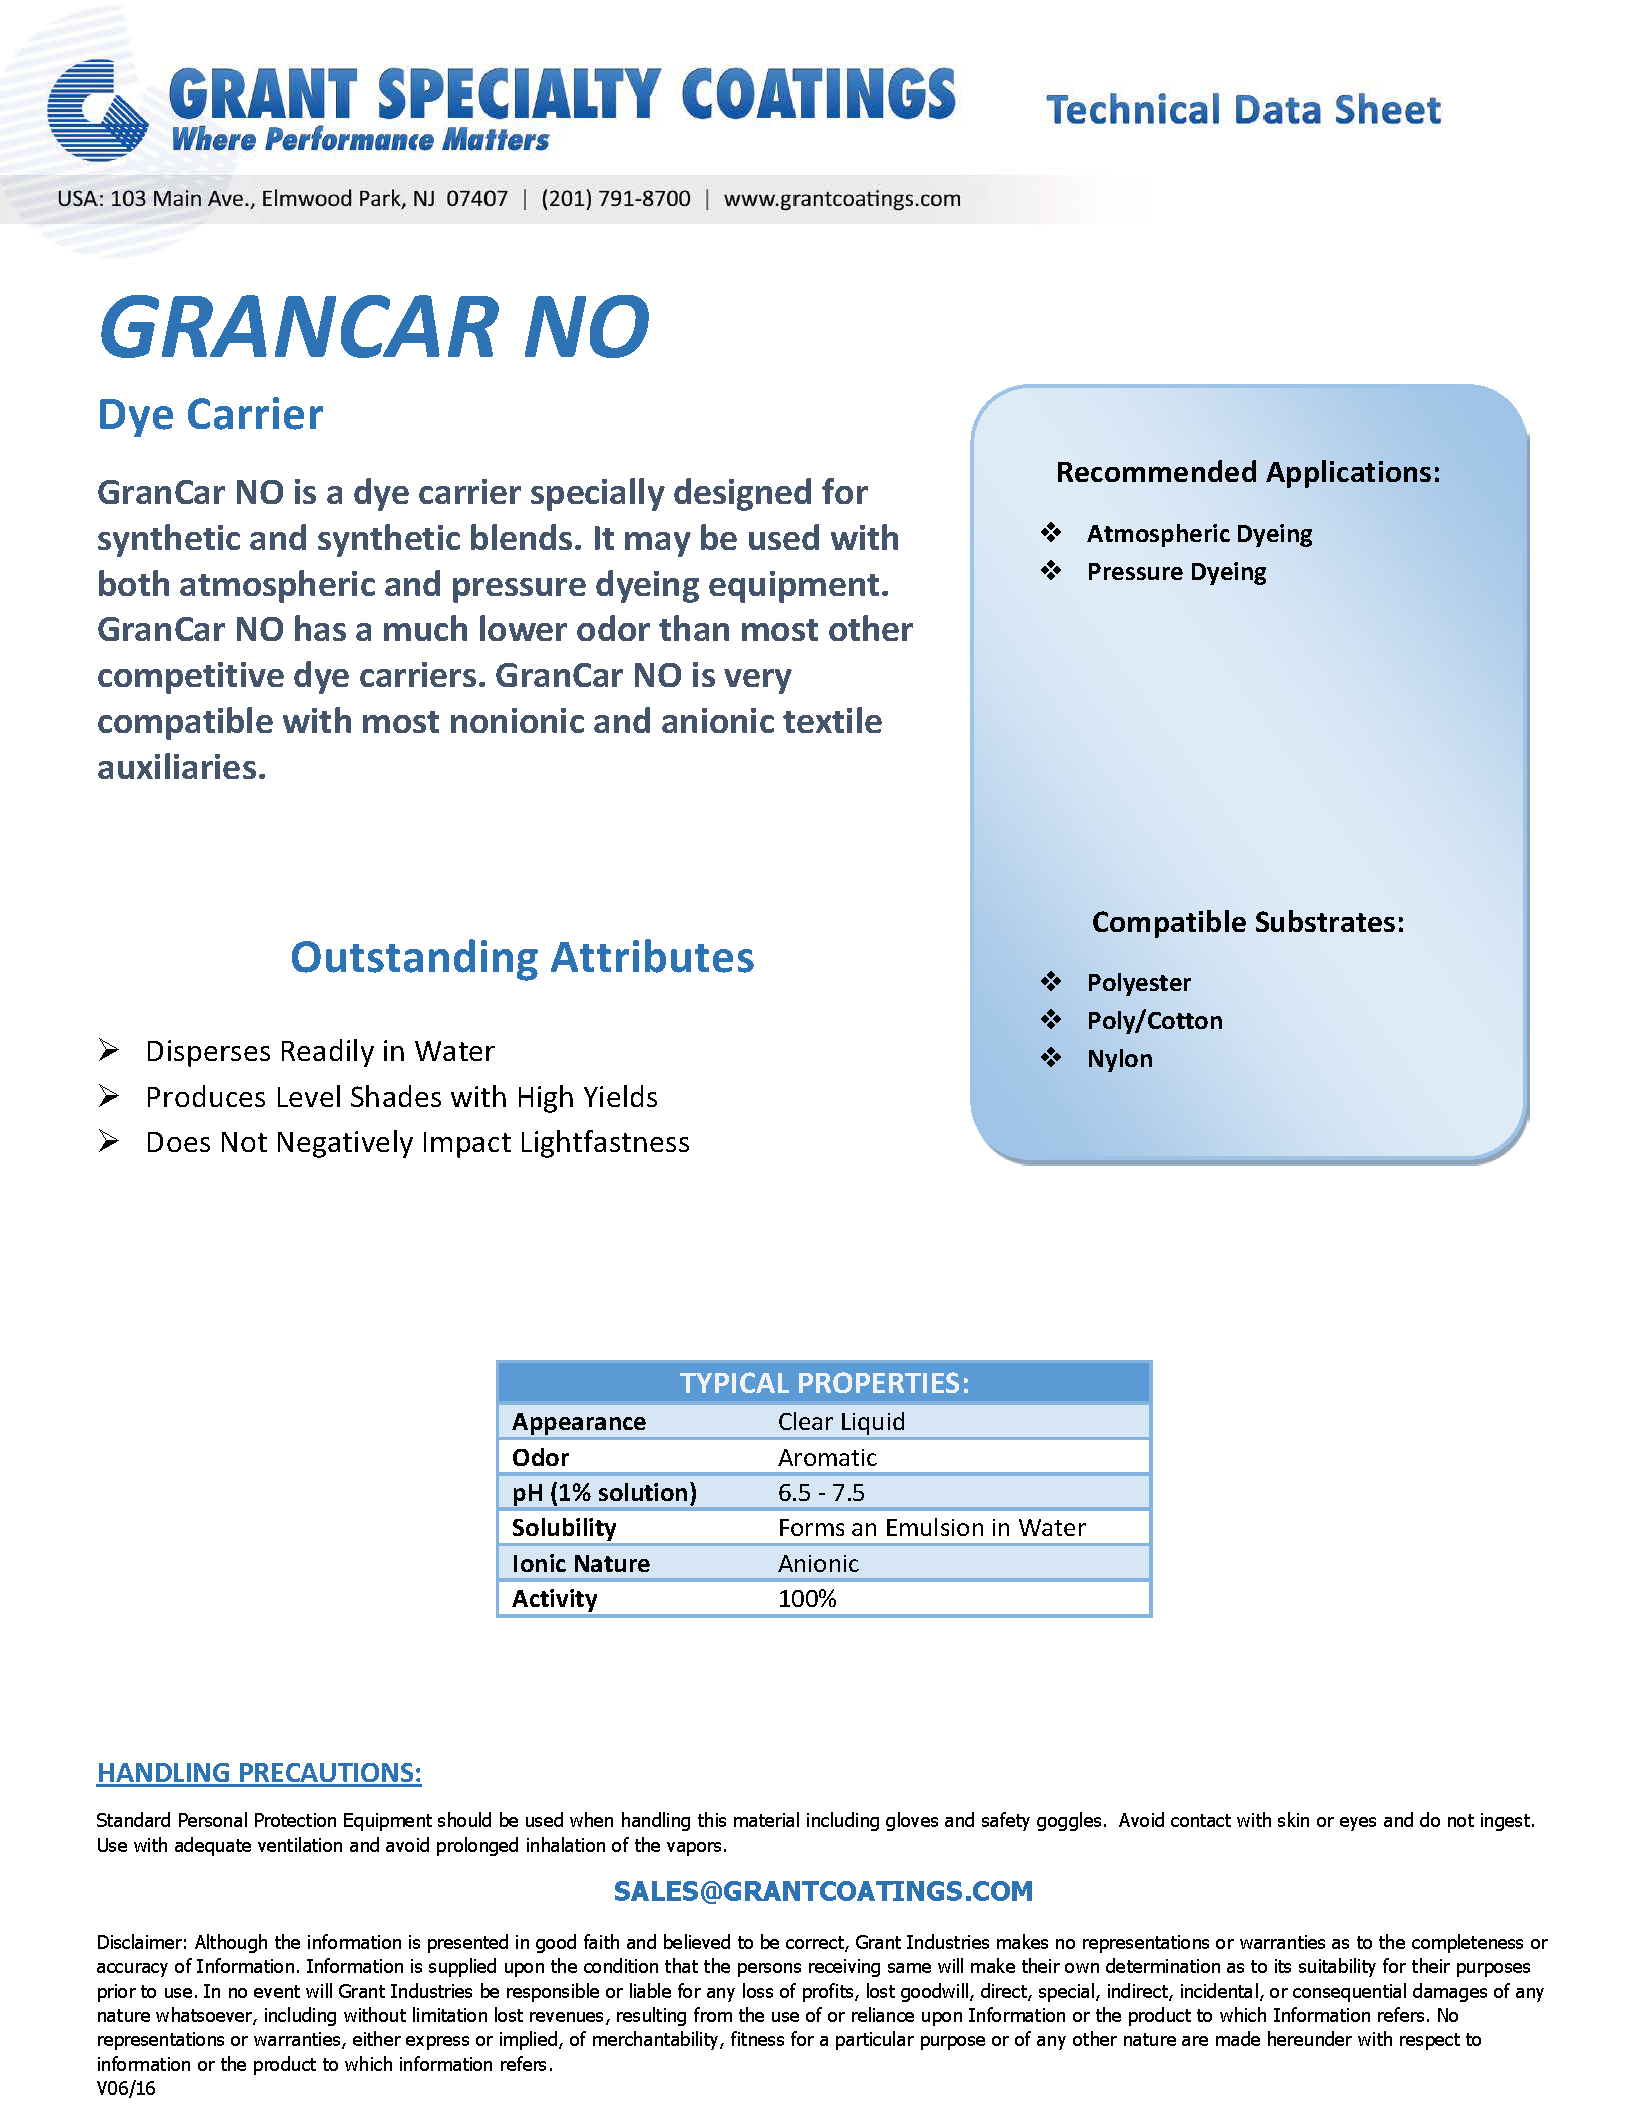 Textile Auxiliary Dye Carrier GranCar NO